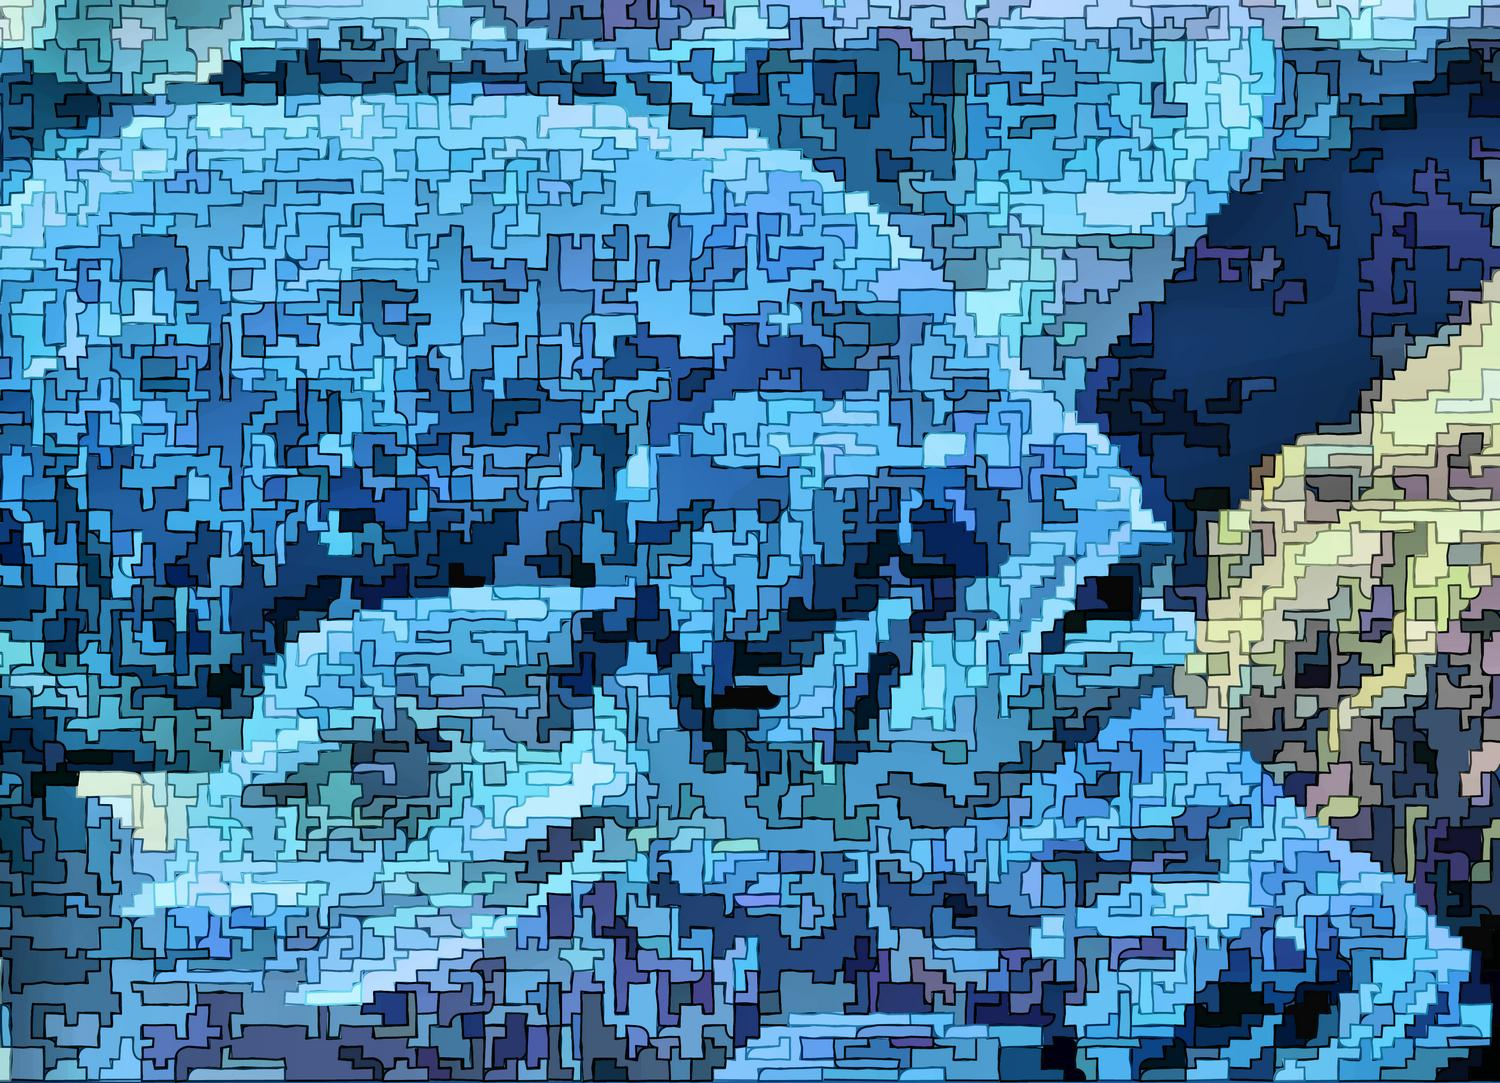 - Puzzlefish - Techno-Impressionist Museum - Techno-Impressionism - art - beautiful - photo photography picture - by Tony Karp